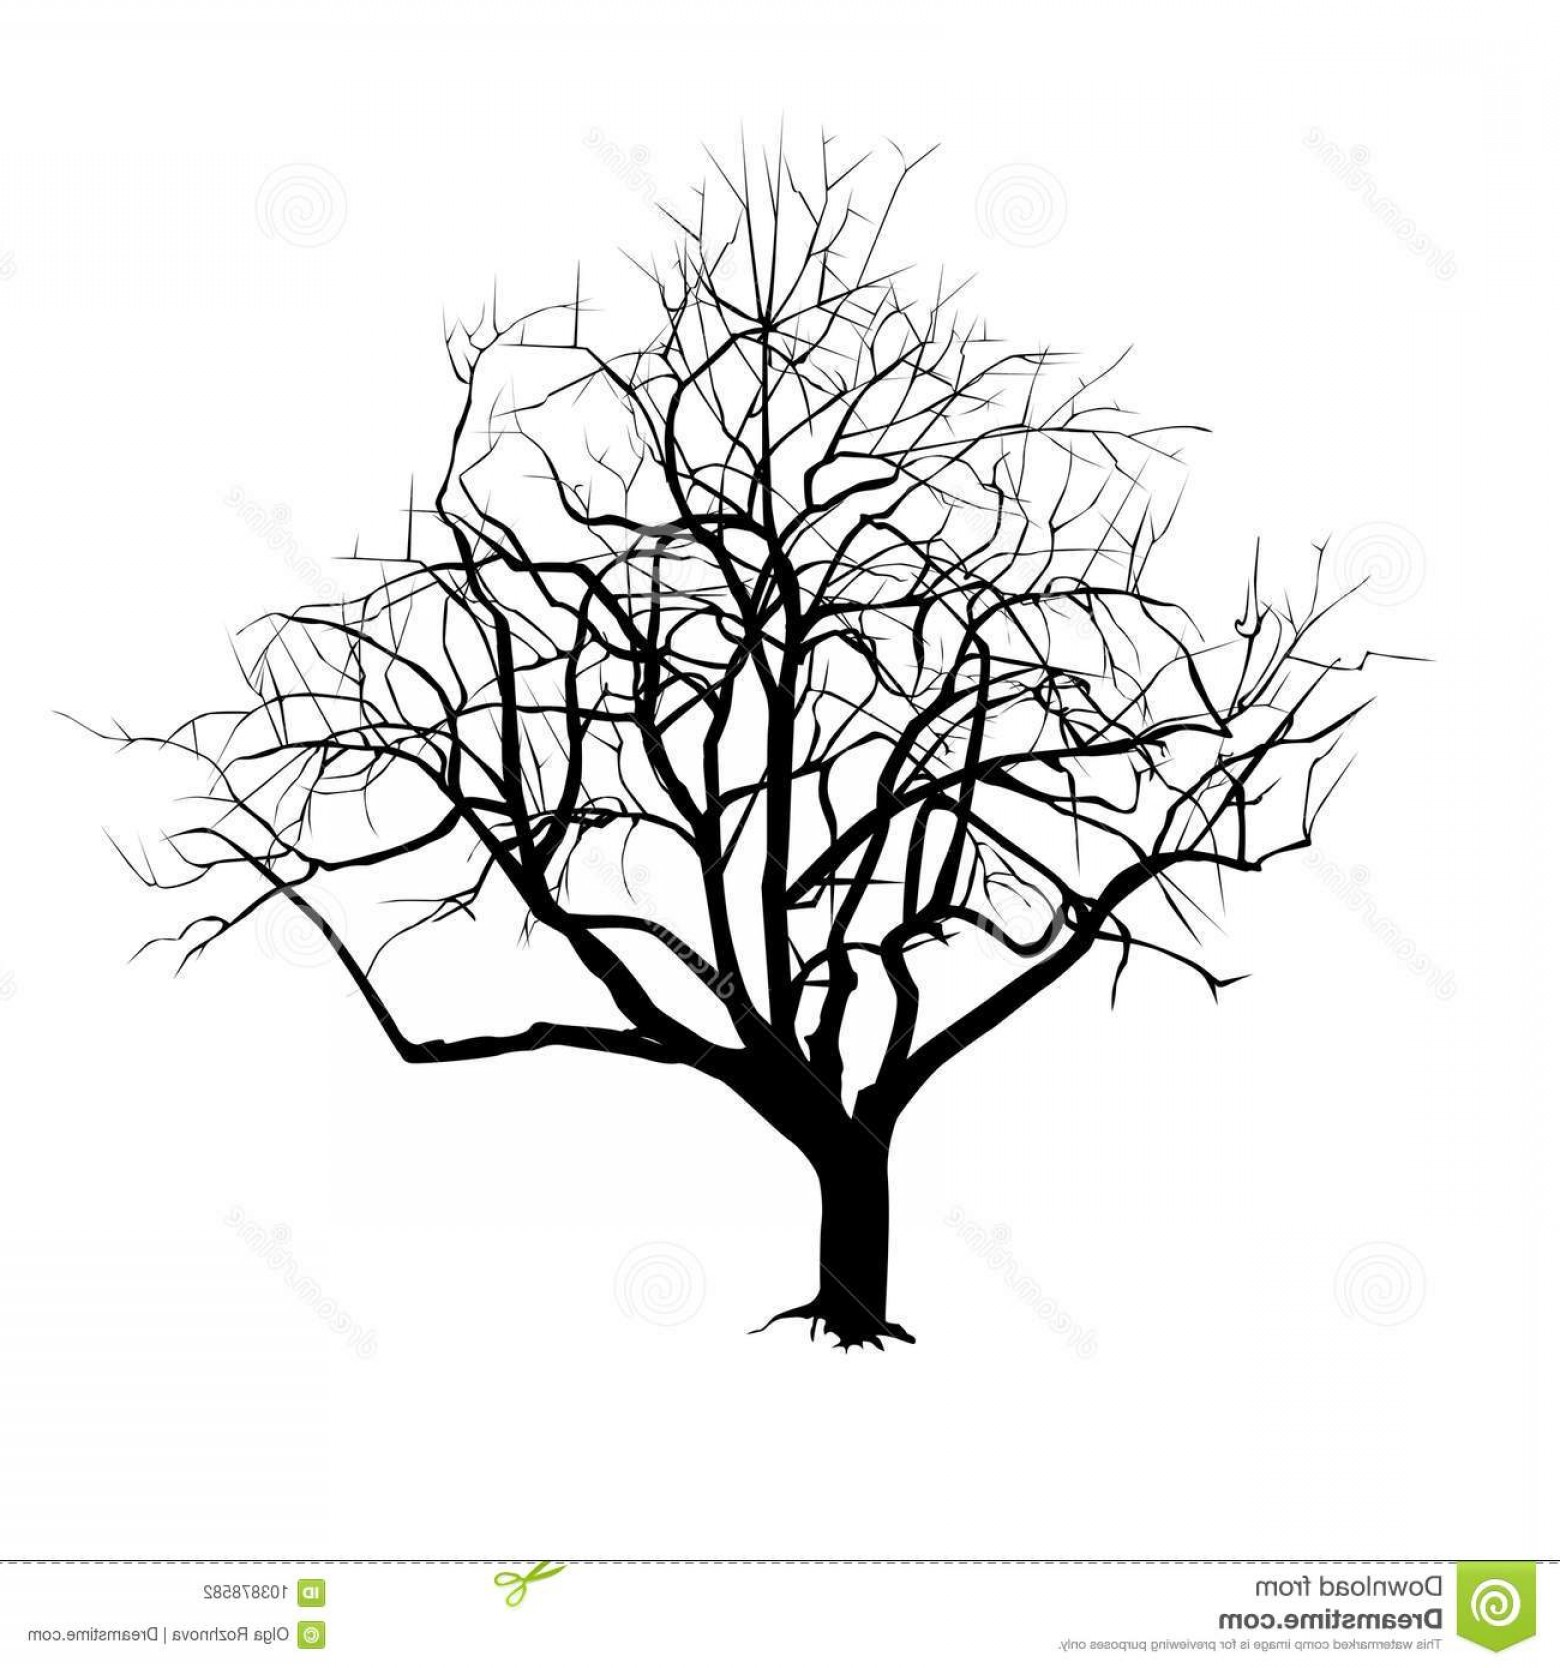 Tree Trunk Silhouette Vector: Tree Trunk Silhouette Fallen Leaves Tree Silhouette Fallen Leaves Winter Black White Vector Drawing Image